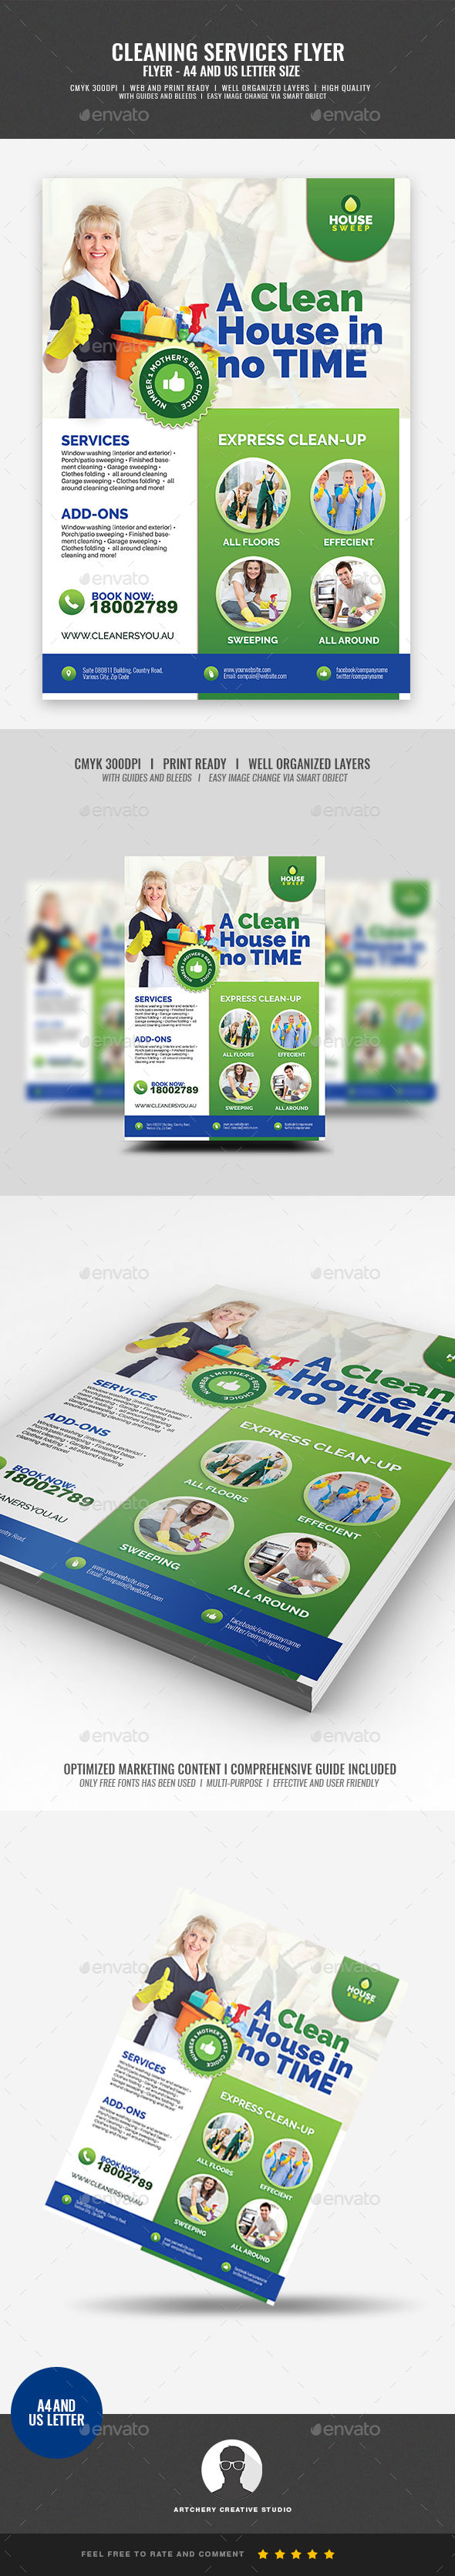 Commercial Cleaning Promotional Flyer - Corporate Flyers